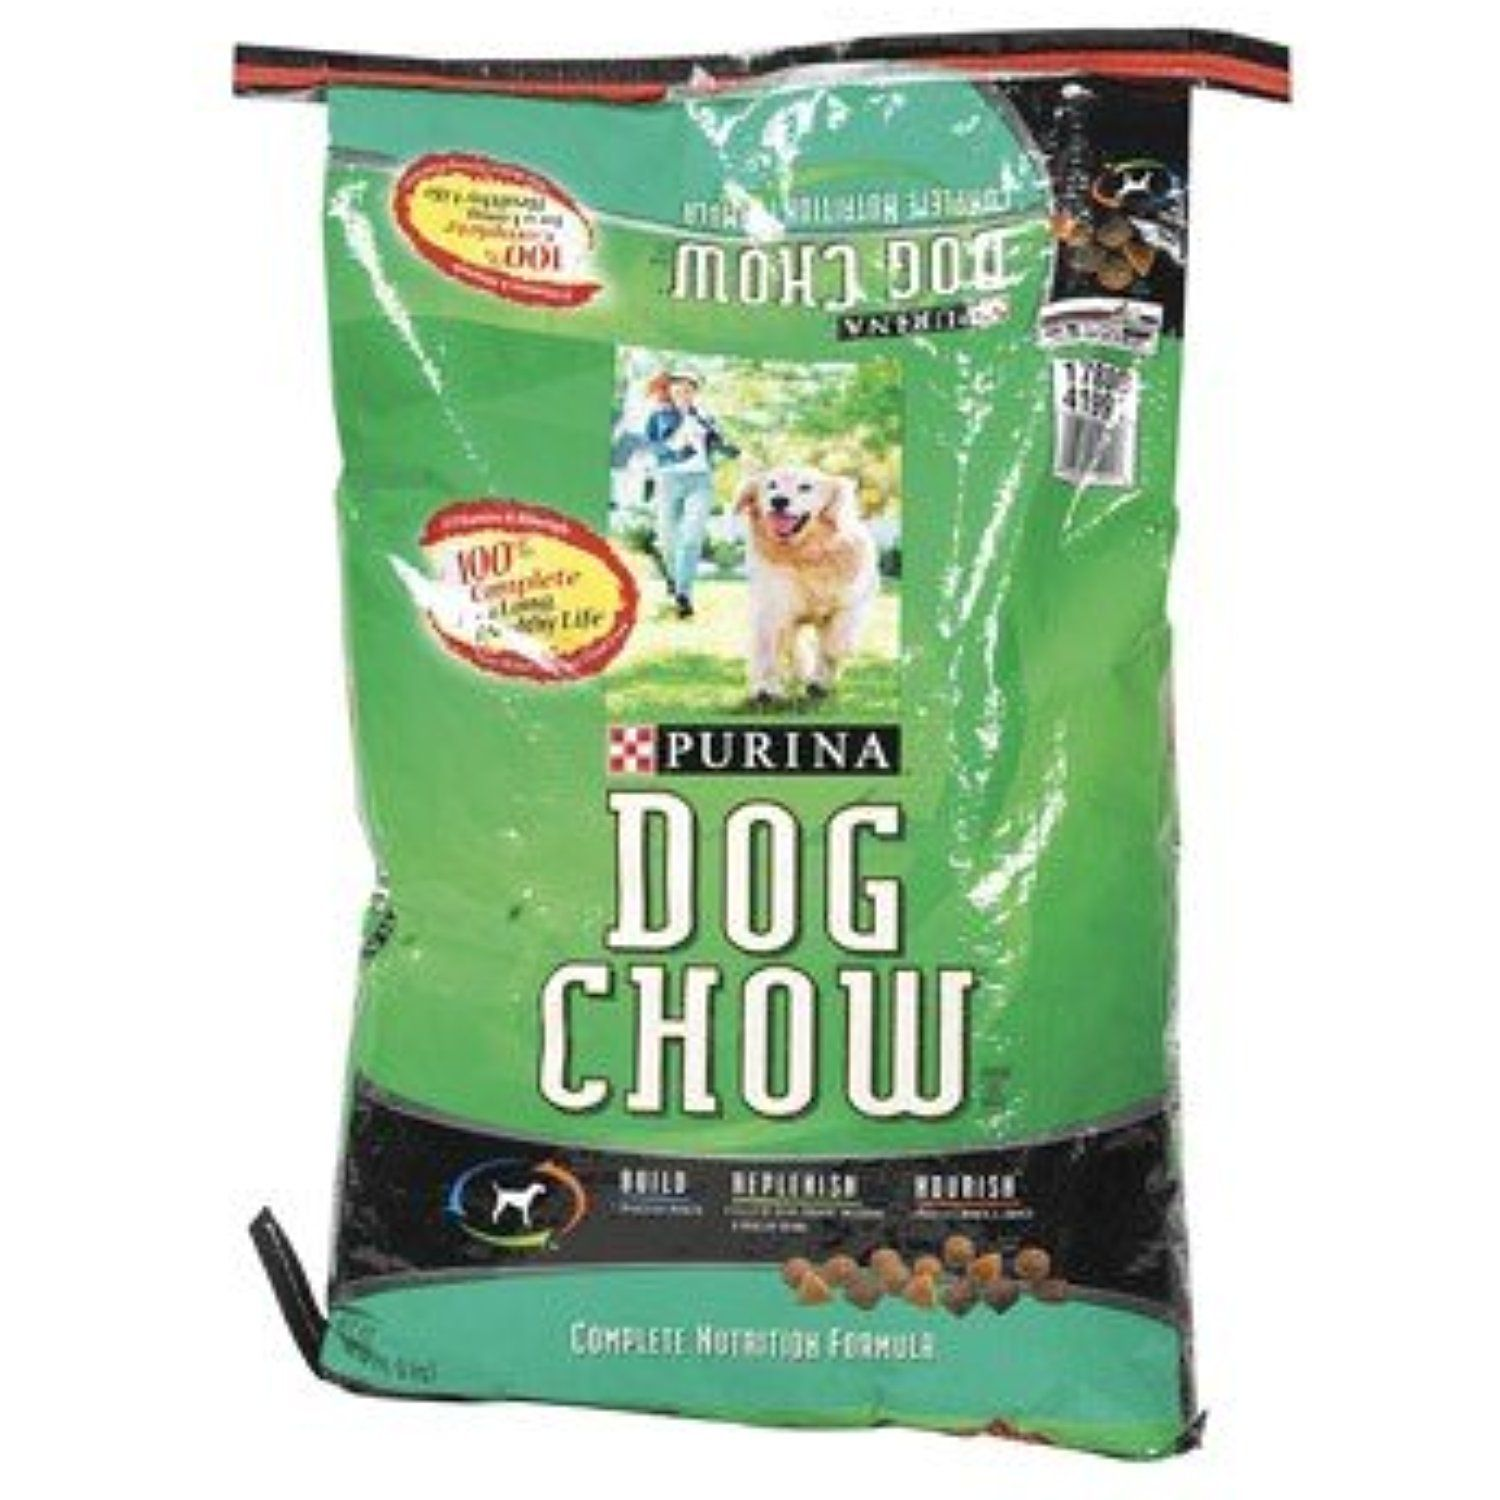 20 Lb Dog Chow Food The Details Can Be Found By Clicking On